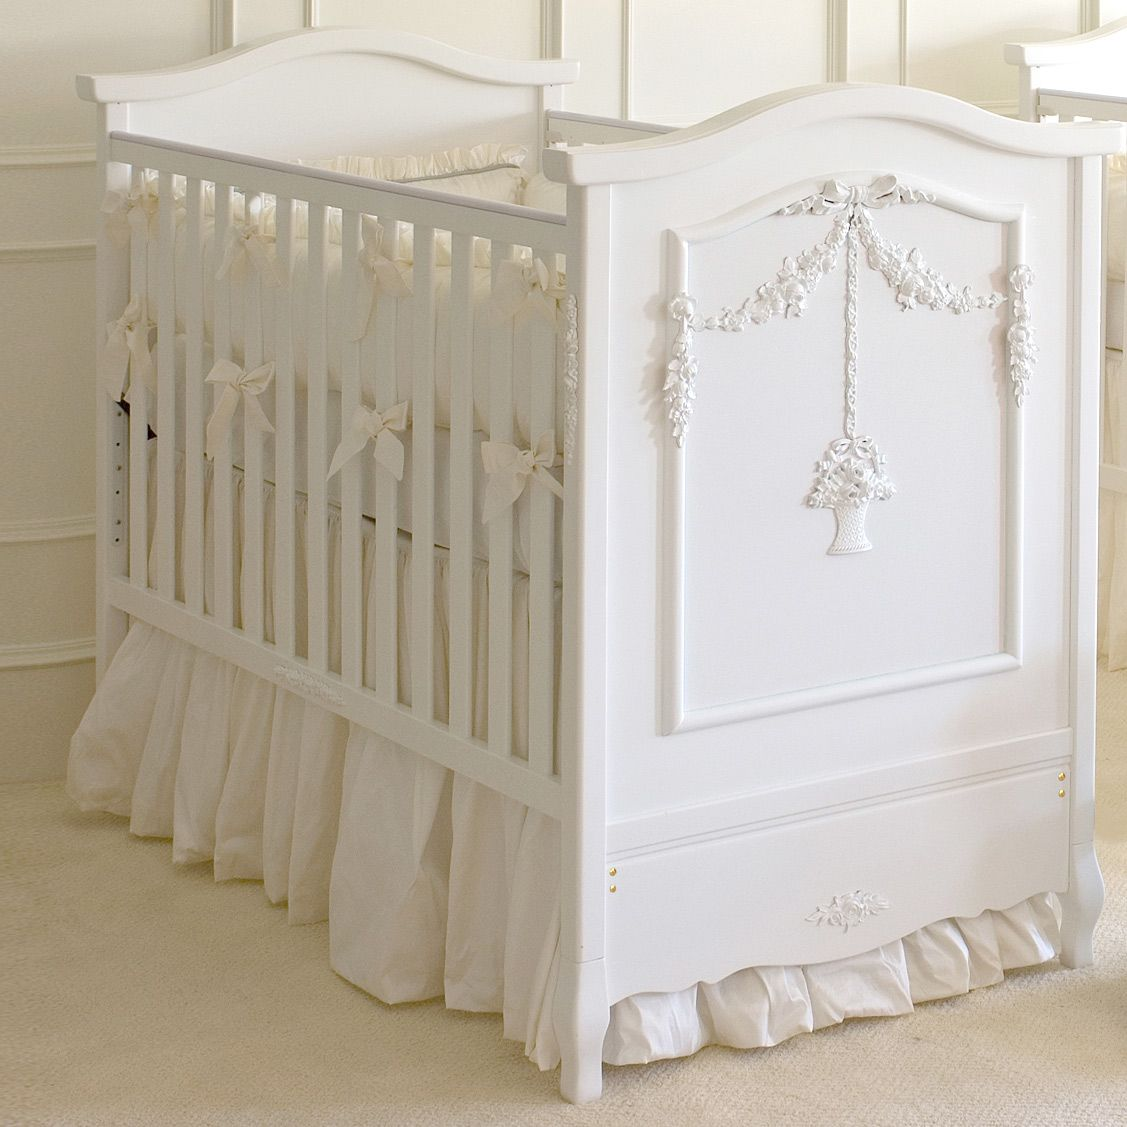 french style baby furniture. French Flower Basket Crib At LuxuryLamb. Shop For From Baby Furniture / Cribs Designer Collection Affordable Prices. Style R